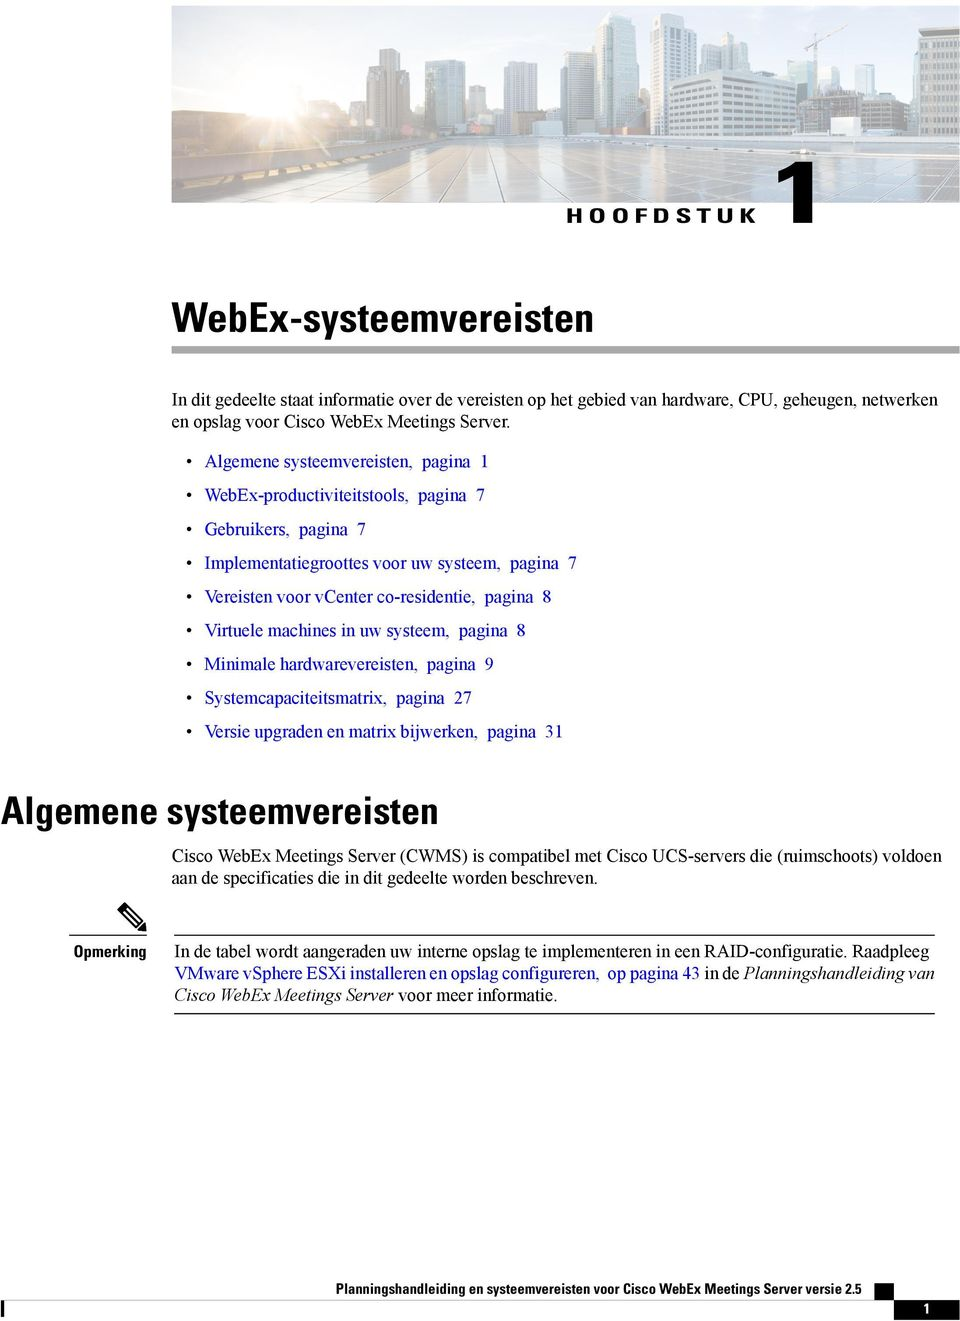 machines in uw systeem, pagina 8 Minimale hardwarevereisten, pagina 9 Systemcapaciteitsmatrix, pagina 27 Versie upgraden en matrix bijwerken, pagina 31 Algemene systeemvereisten Cisco WebEx Meetings